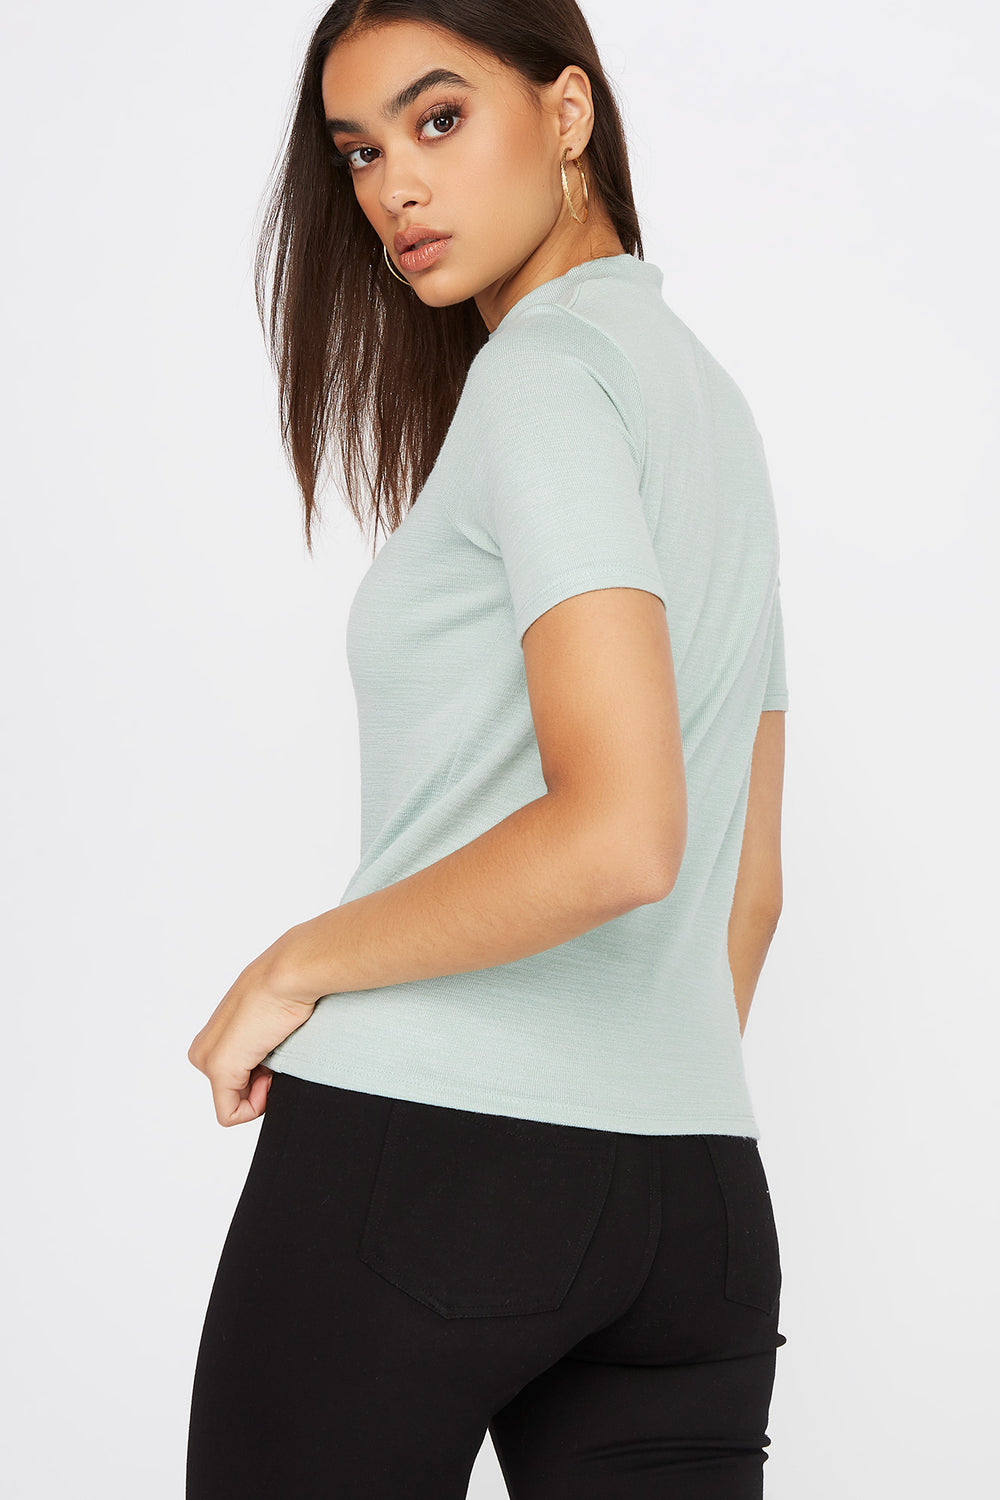 Heather Mock Neck Short Sleeve Sage